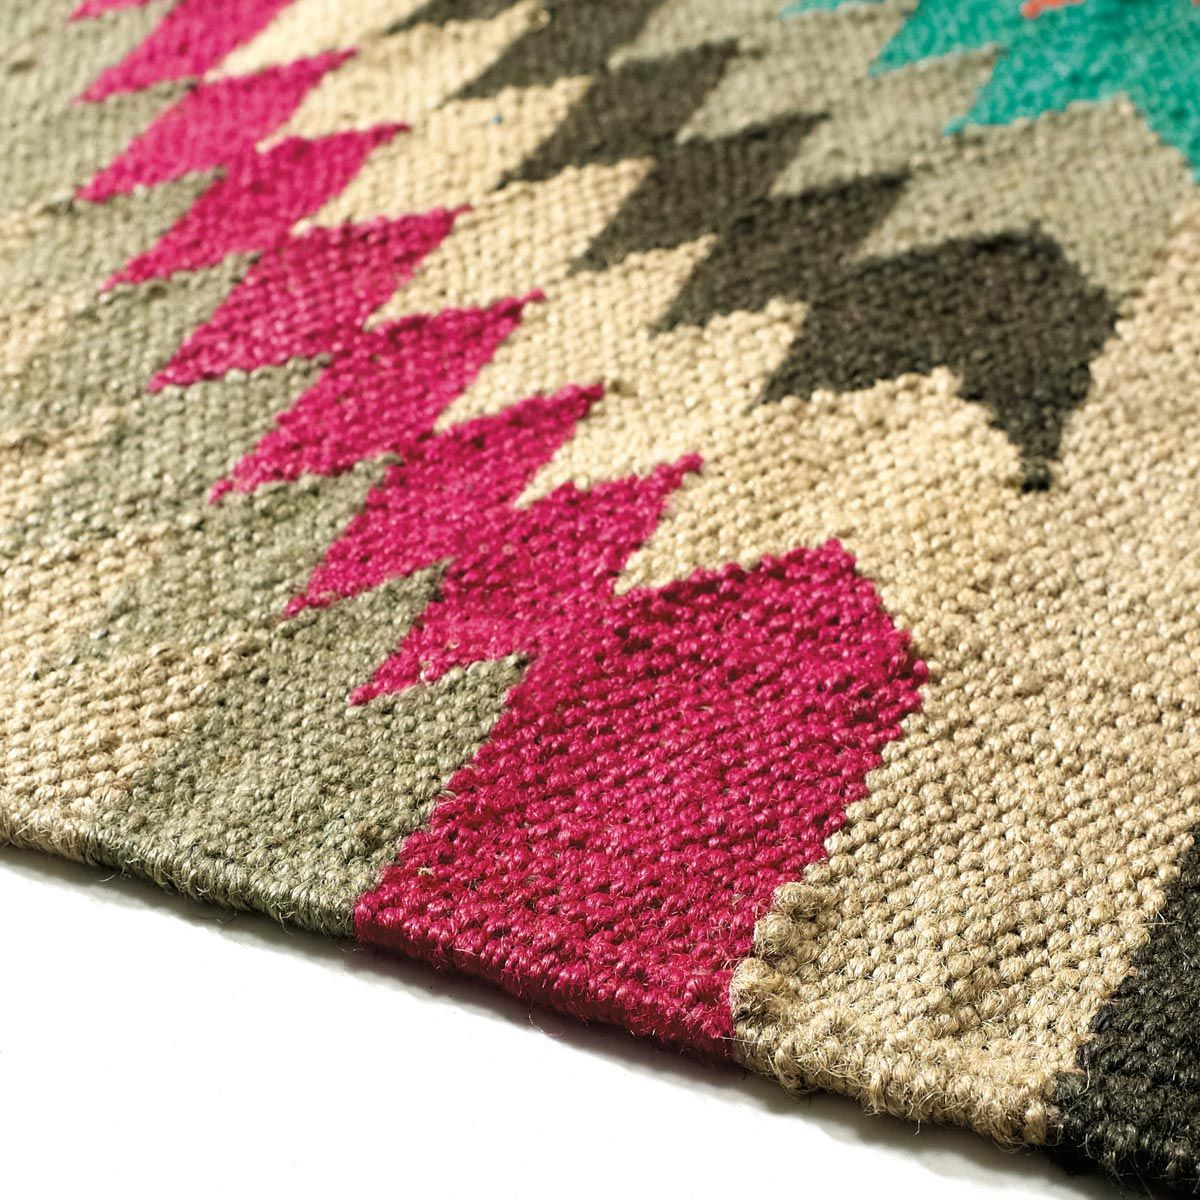 Home Furnishings Rugs Woven Rug Colorful Rugs